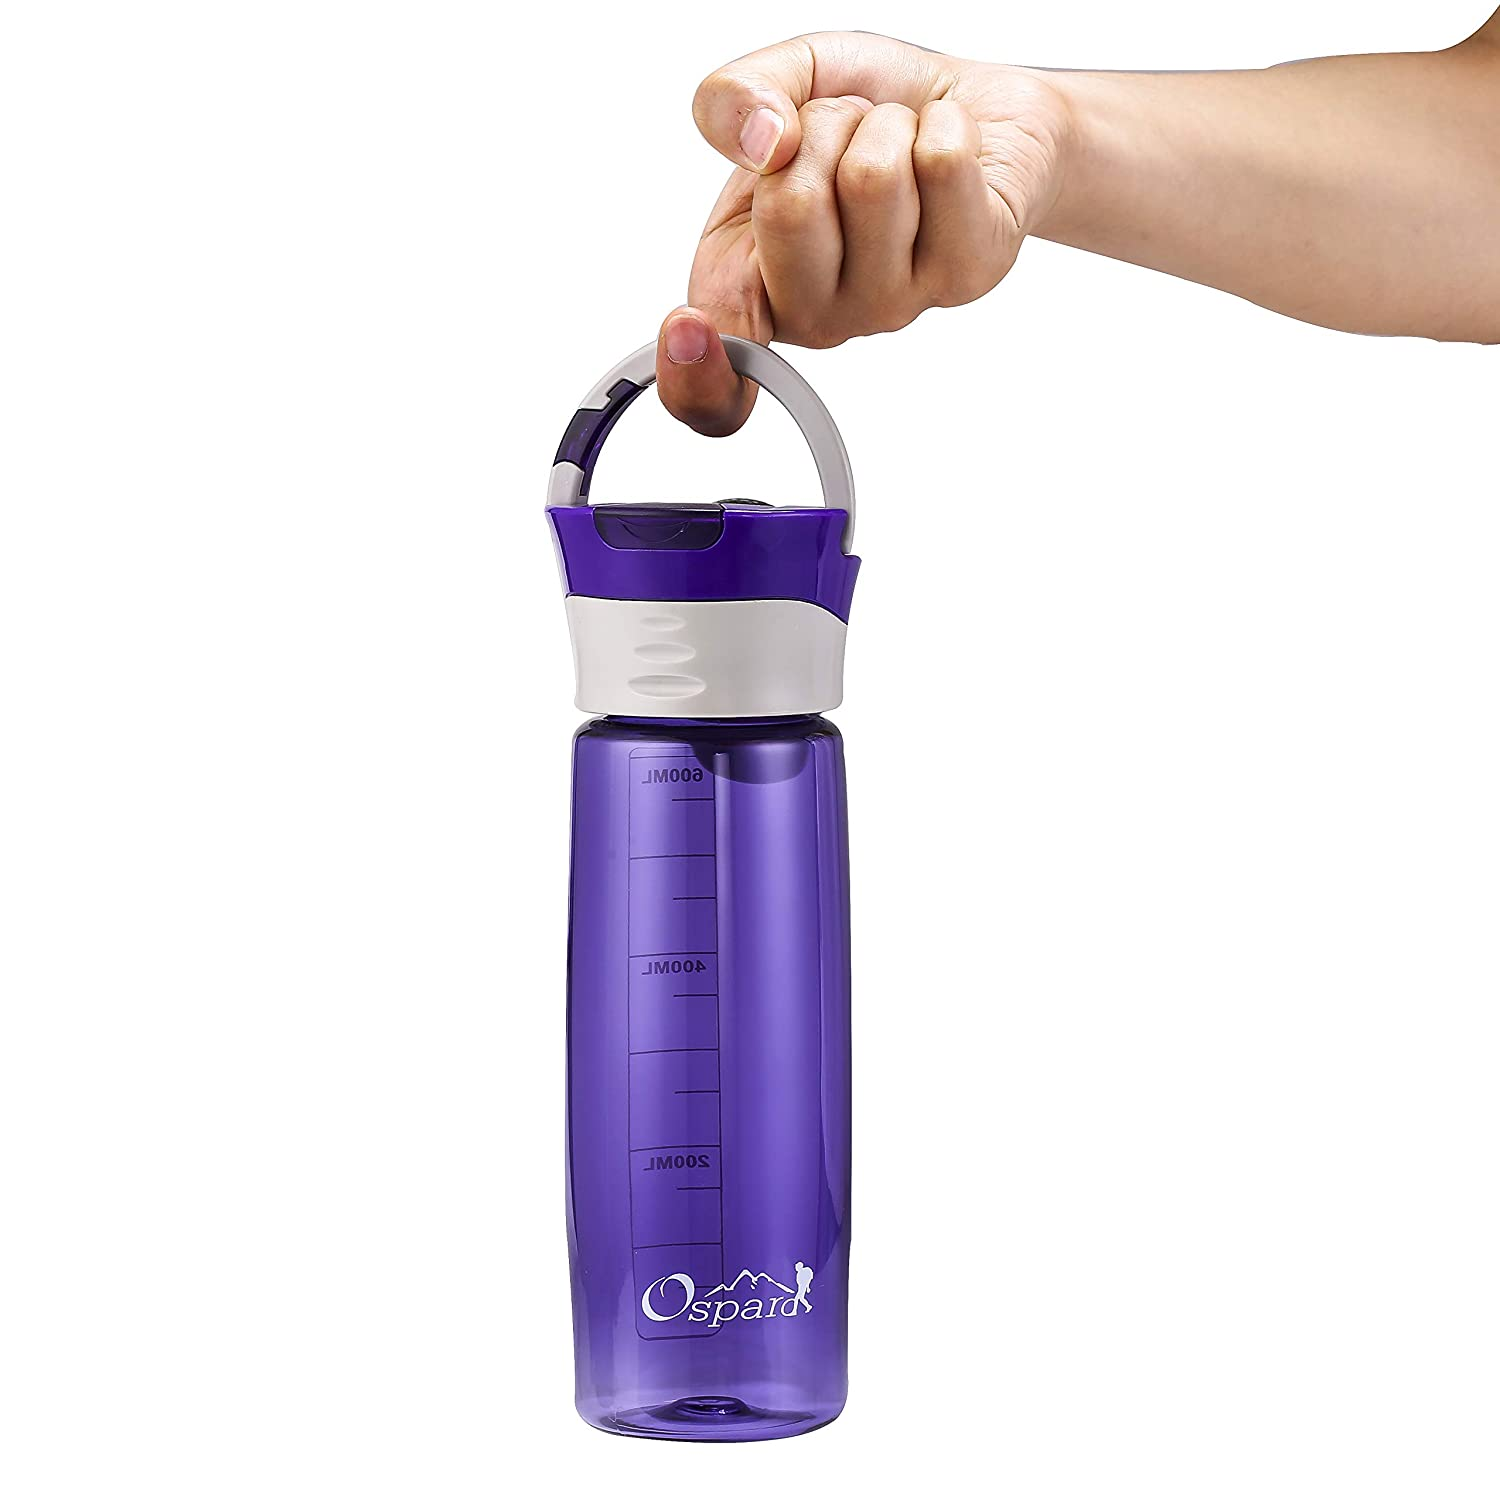 OSPARD Sports Active Bike Water Bottle Hook 23 oz Non-Toxic BPA Free Eco-Friendly Co-Polyester Plastic Water Container A6